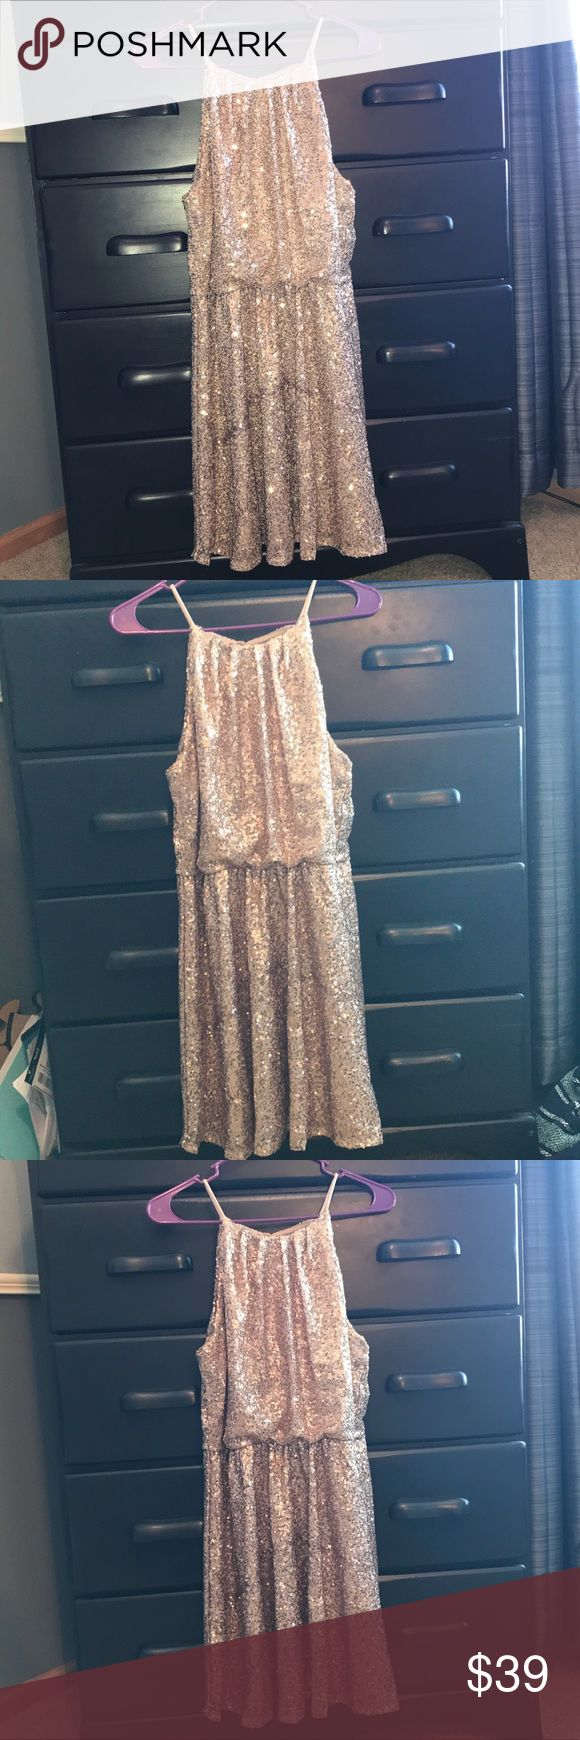 Gold Shimmer Fit and Flare Dress Valentines Day Beautiful gold shimmer dress with tiny gold sequins. It is high neck and hits about mid thigh. Has a beautiful open back details with a button at the neck. Elastic waistband. Great for the holidays or Valentine's Day. Make an offer! Forever 21 Dresses